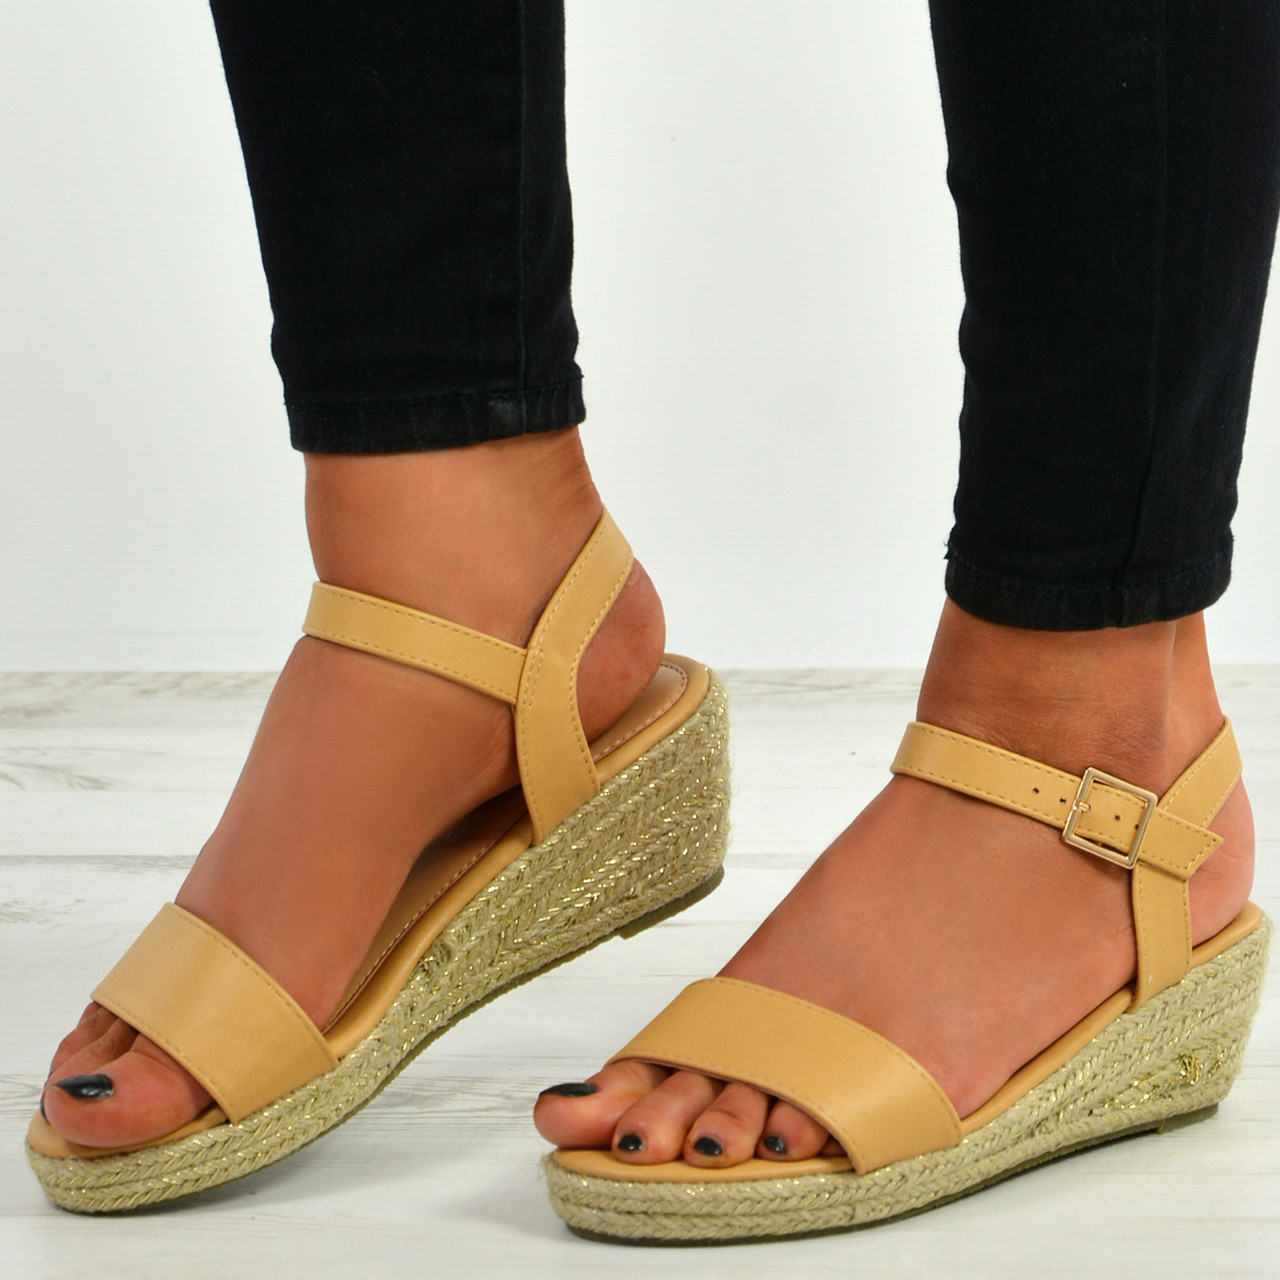 2d29aa53fe3 New womens ladies peep toe espadrille ankle strap wedge sandals summer  shoes jpg 1280x1280 Closed toe